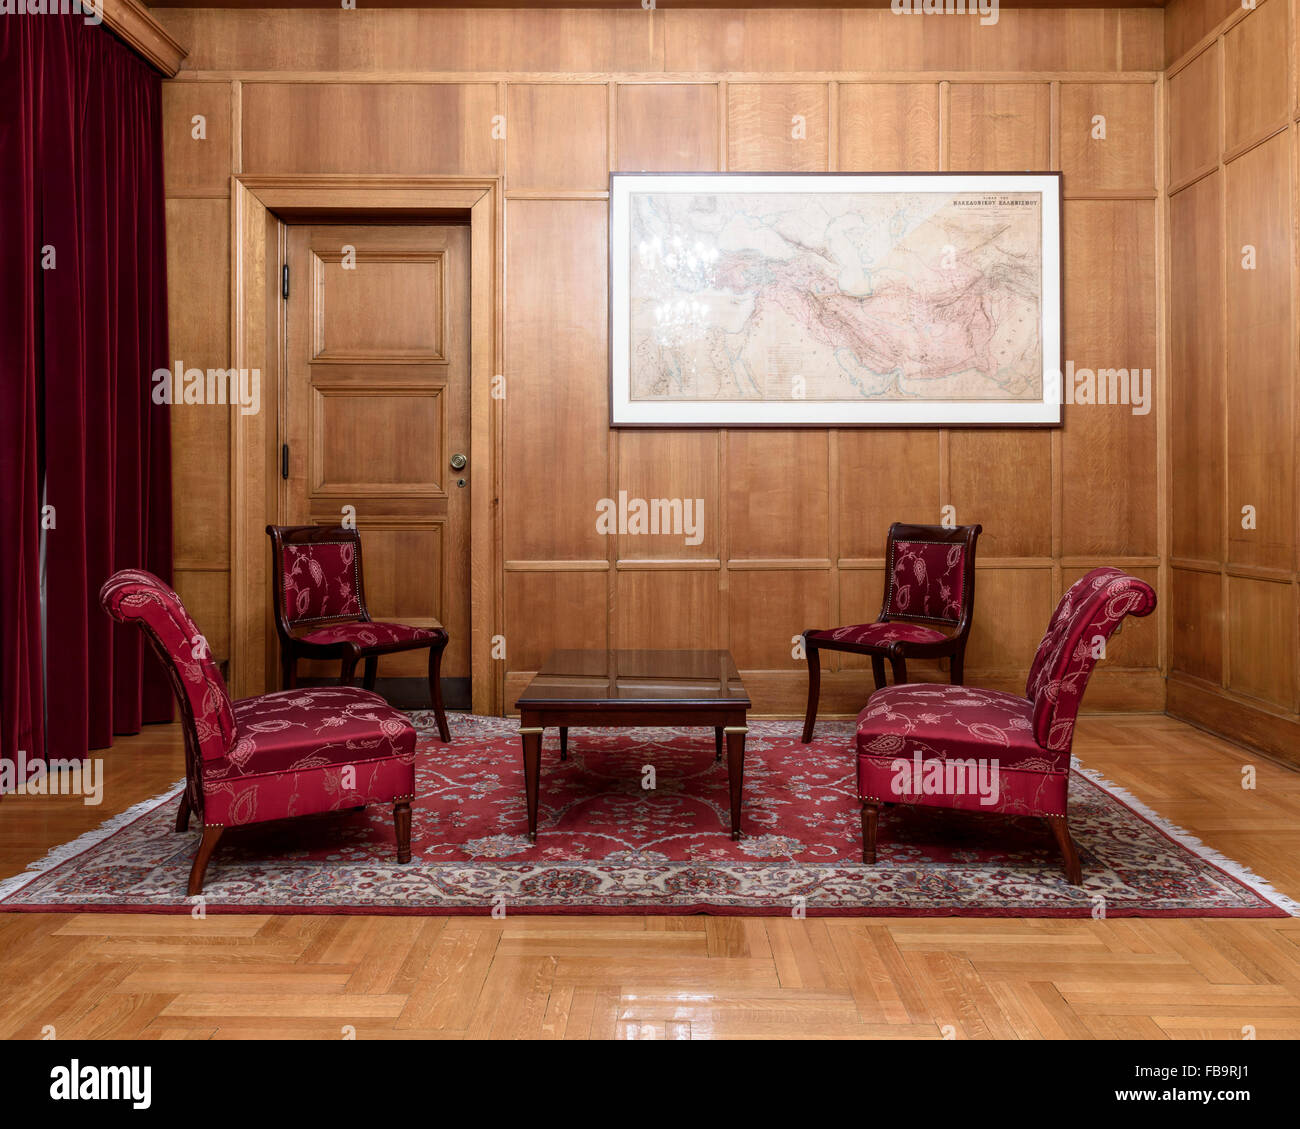 Meeting room at the Archeological Society at Athens. Institutions of Athens, Athens, Greece. Architect: N/A, 2015. Stock Photo